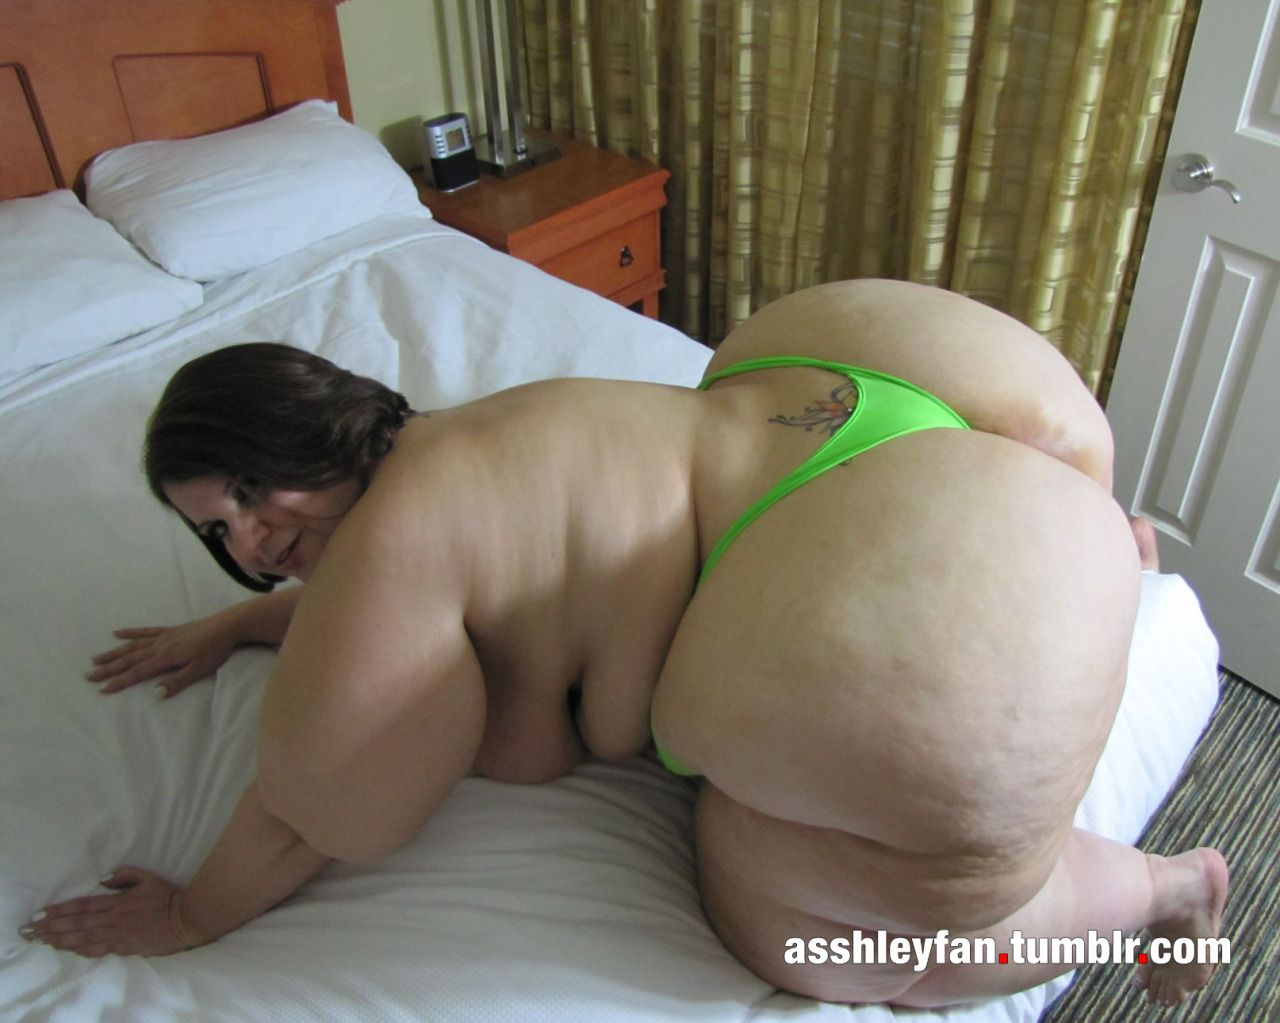 Hairy bent over ass and pussy